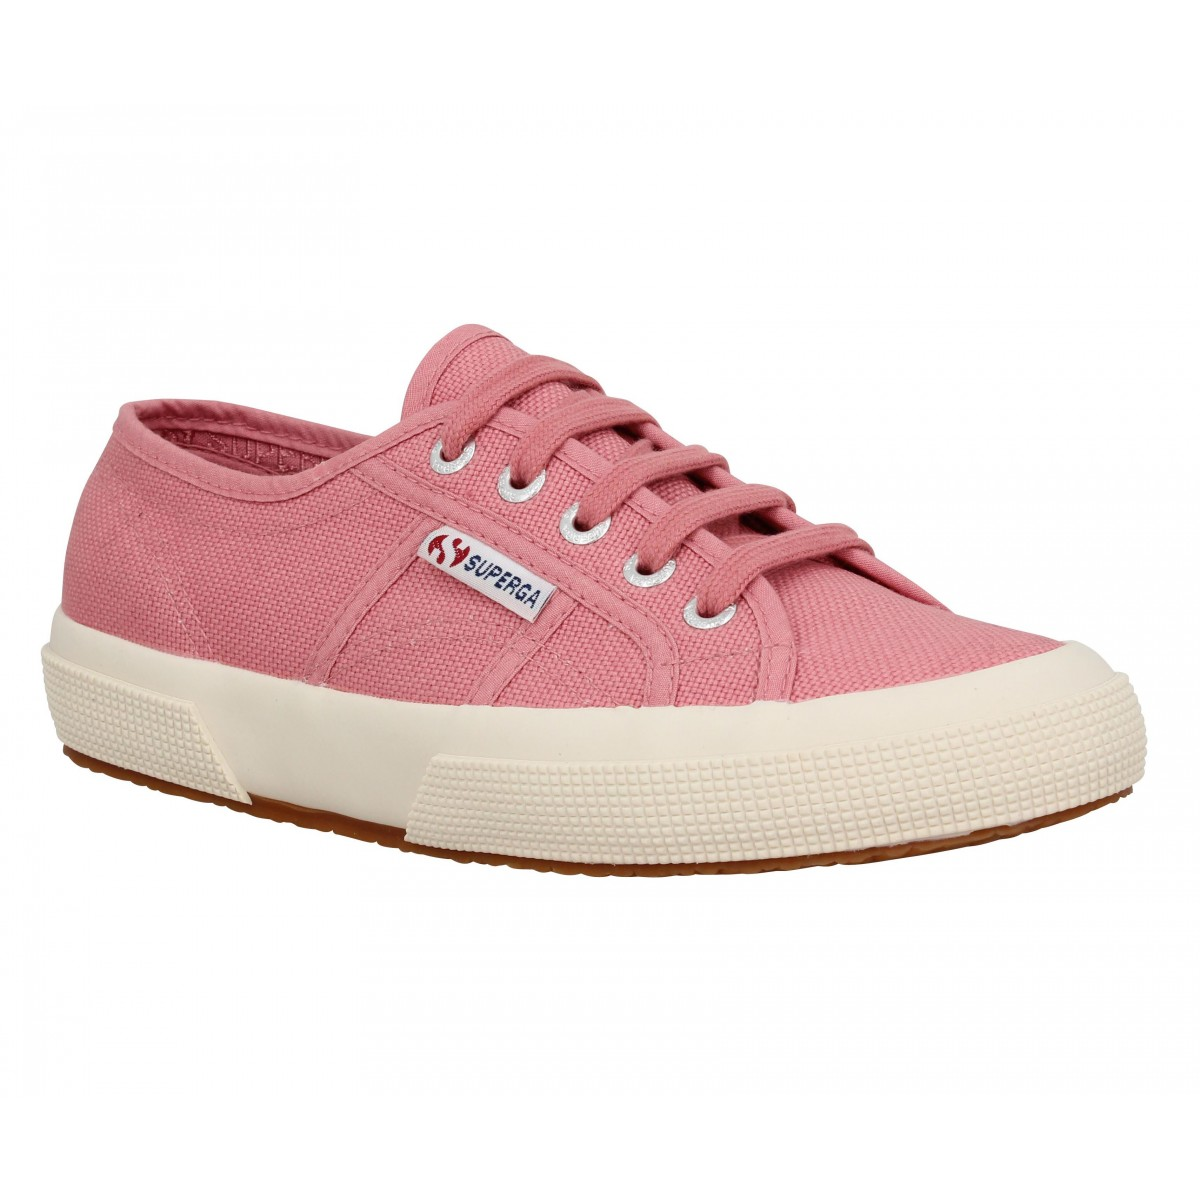 Baskets SUPERGA 2750 toile Femme Dusty Rose